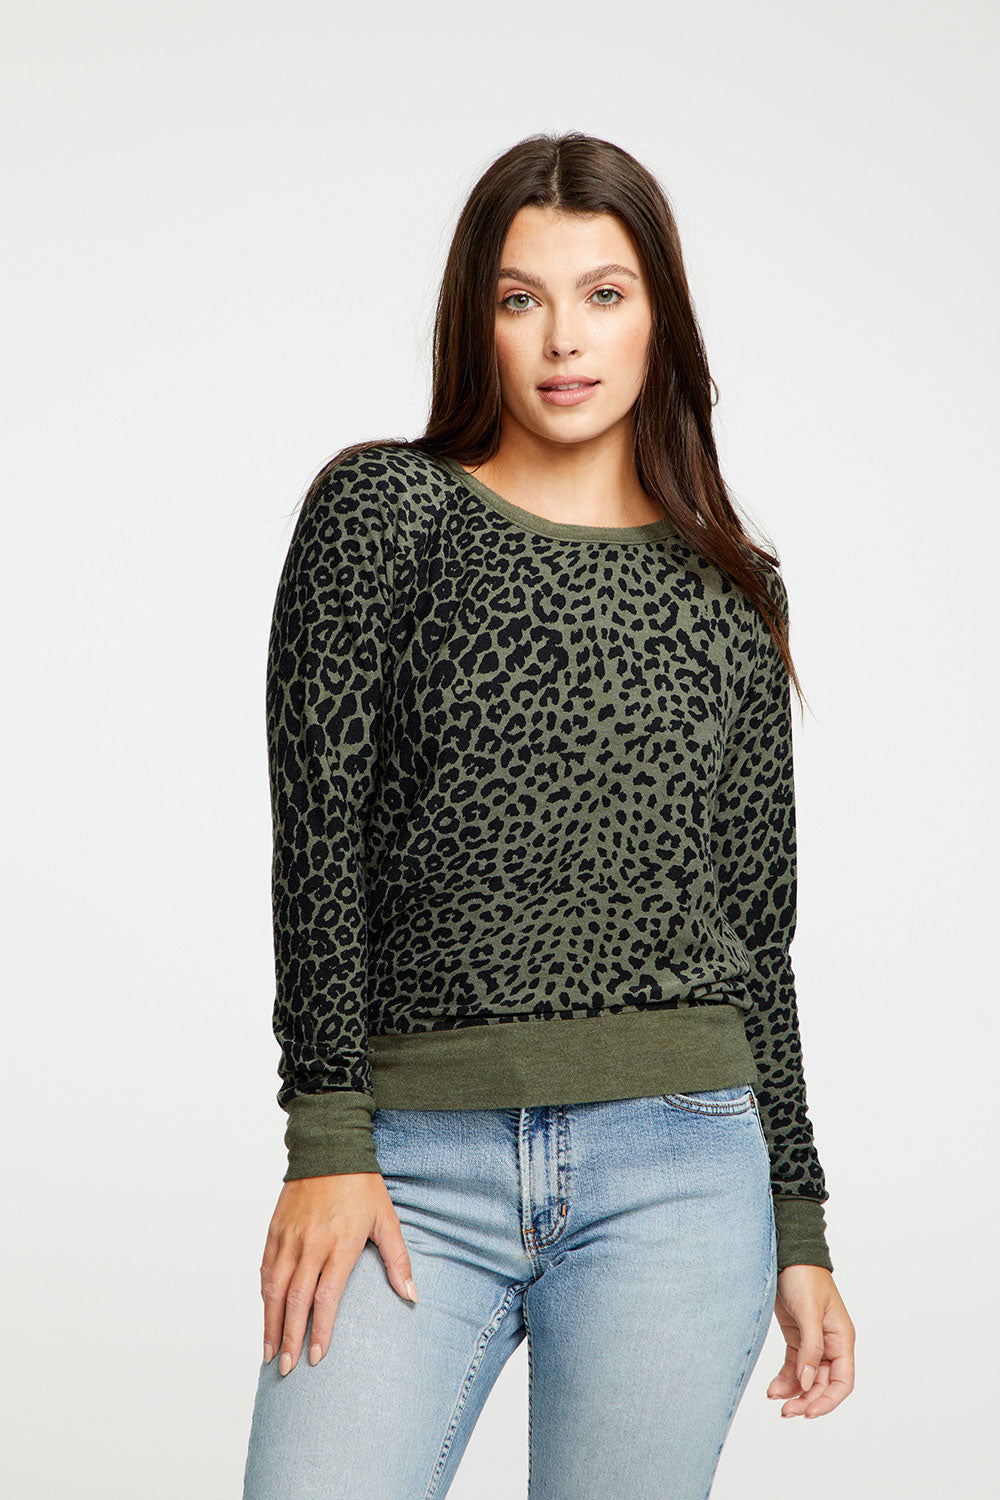 Animal Print Pullover Long Sleeve, WOMENS, chaserbrand.com,chaser clothing,chaser apparel,chaser los angeles